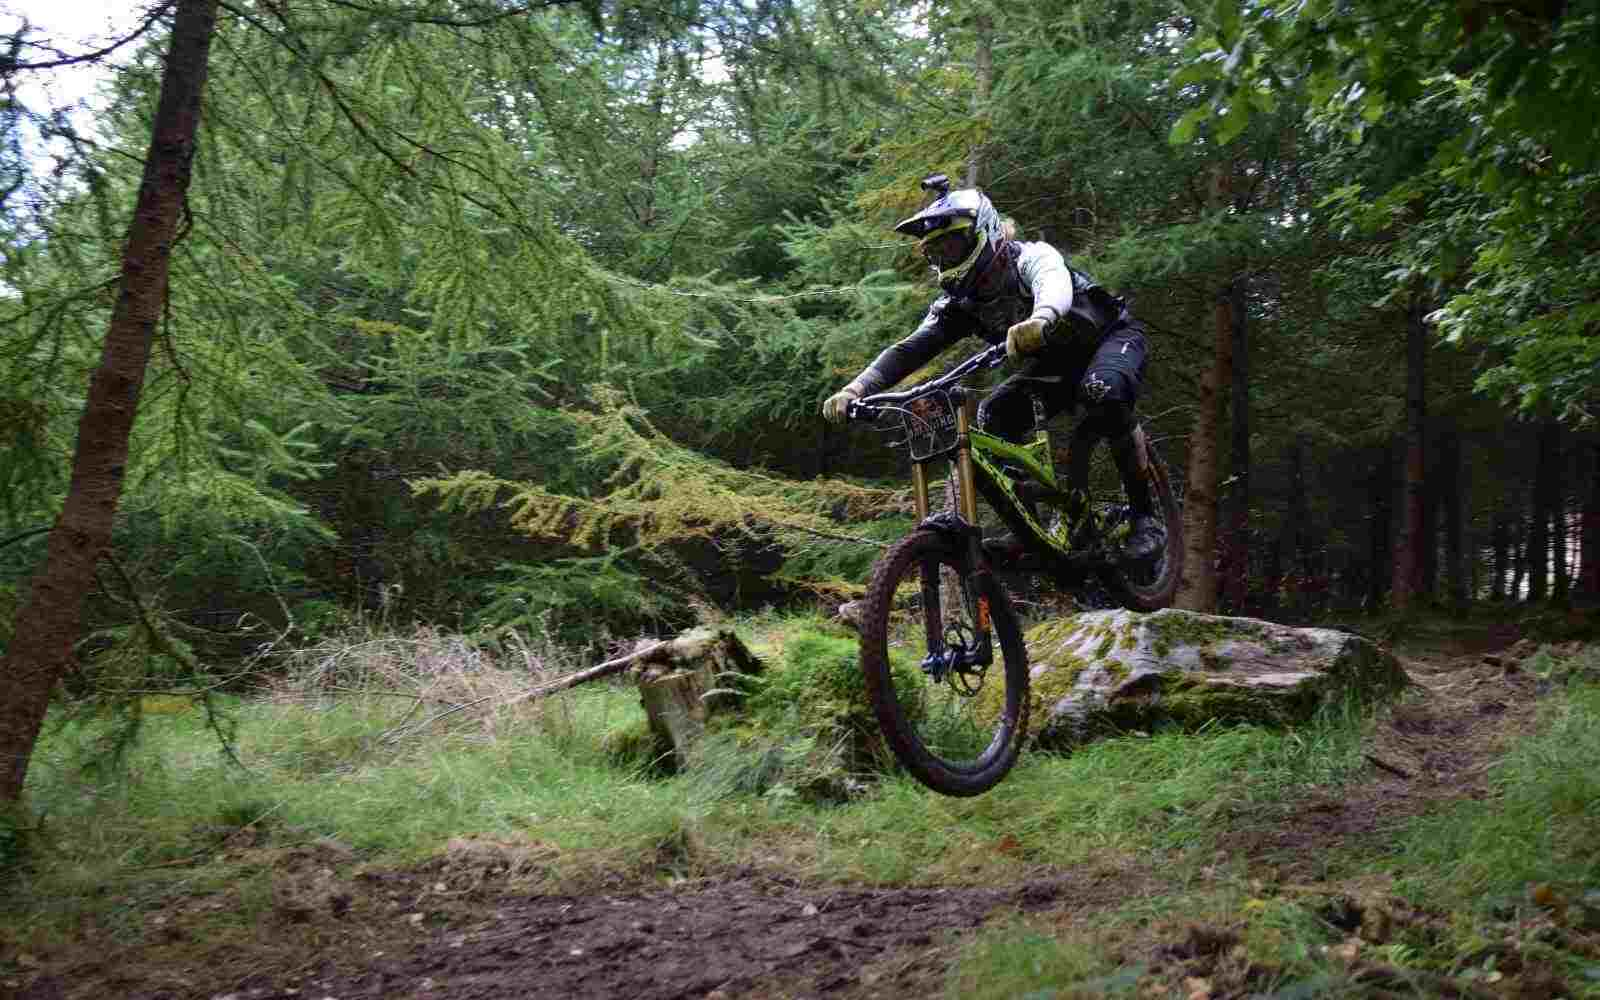 Mountainbiker downhill at Red Bull Hardline 2015 copyright Luke Ryan